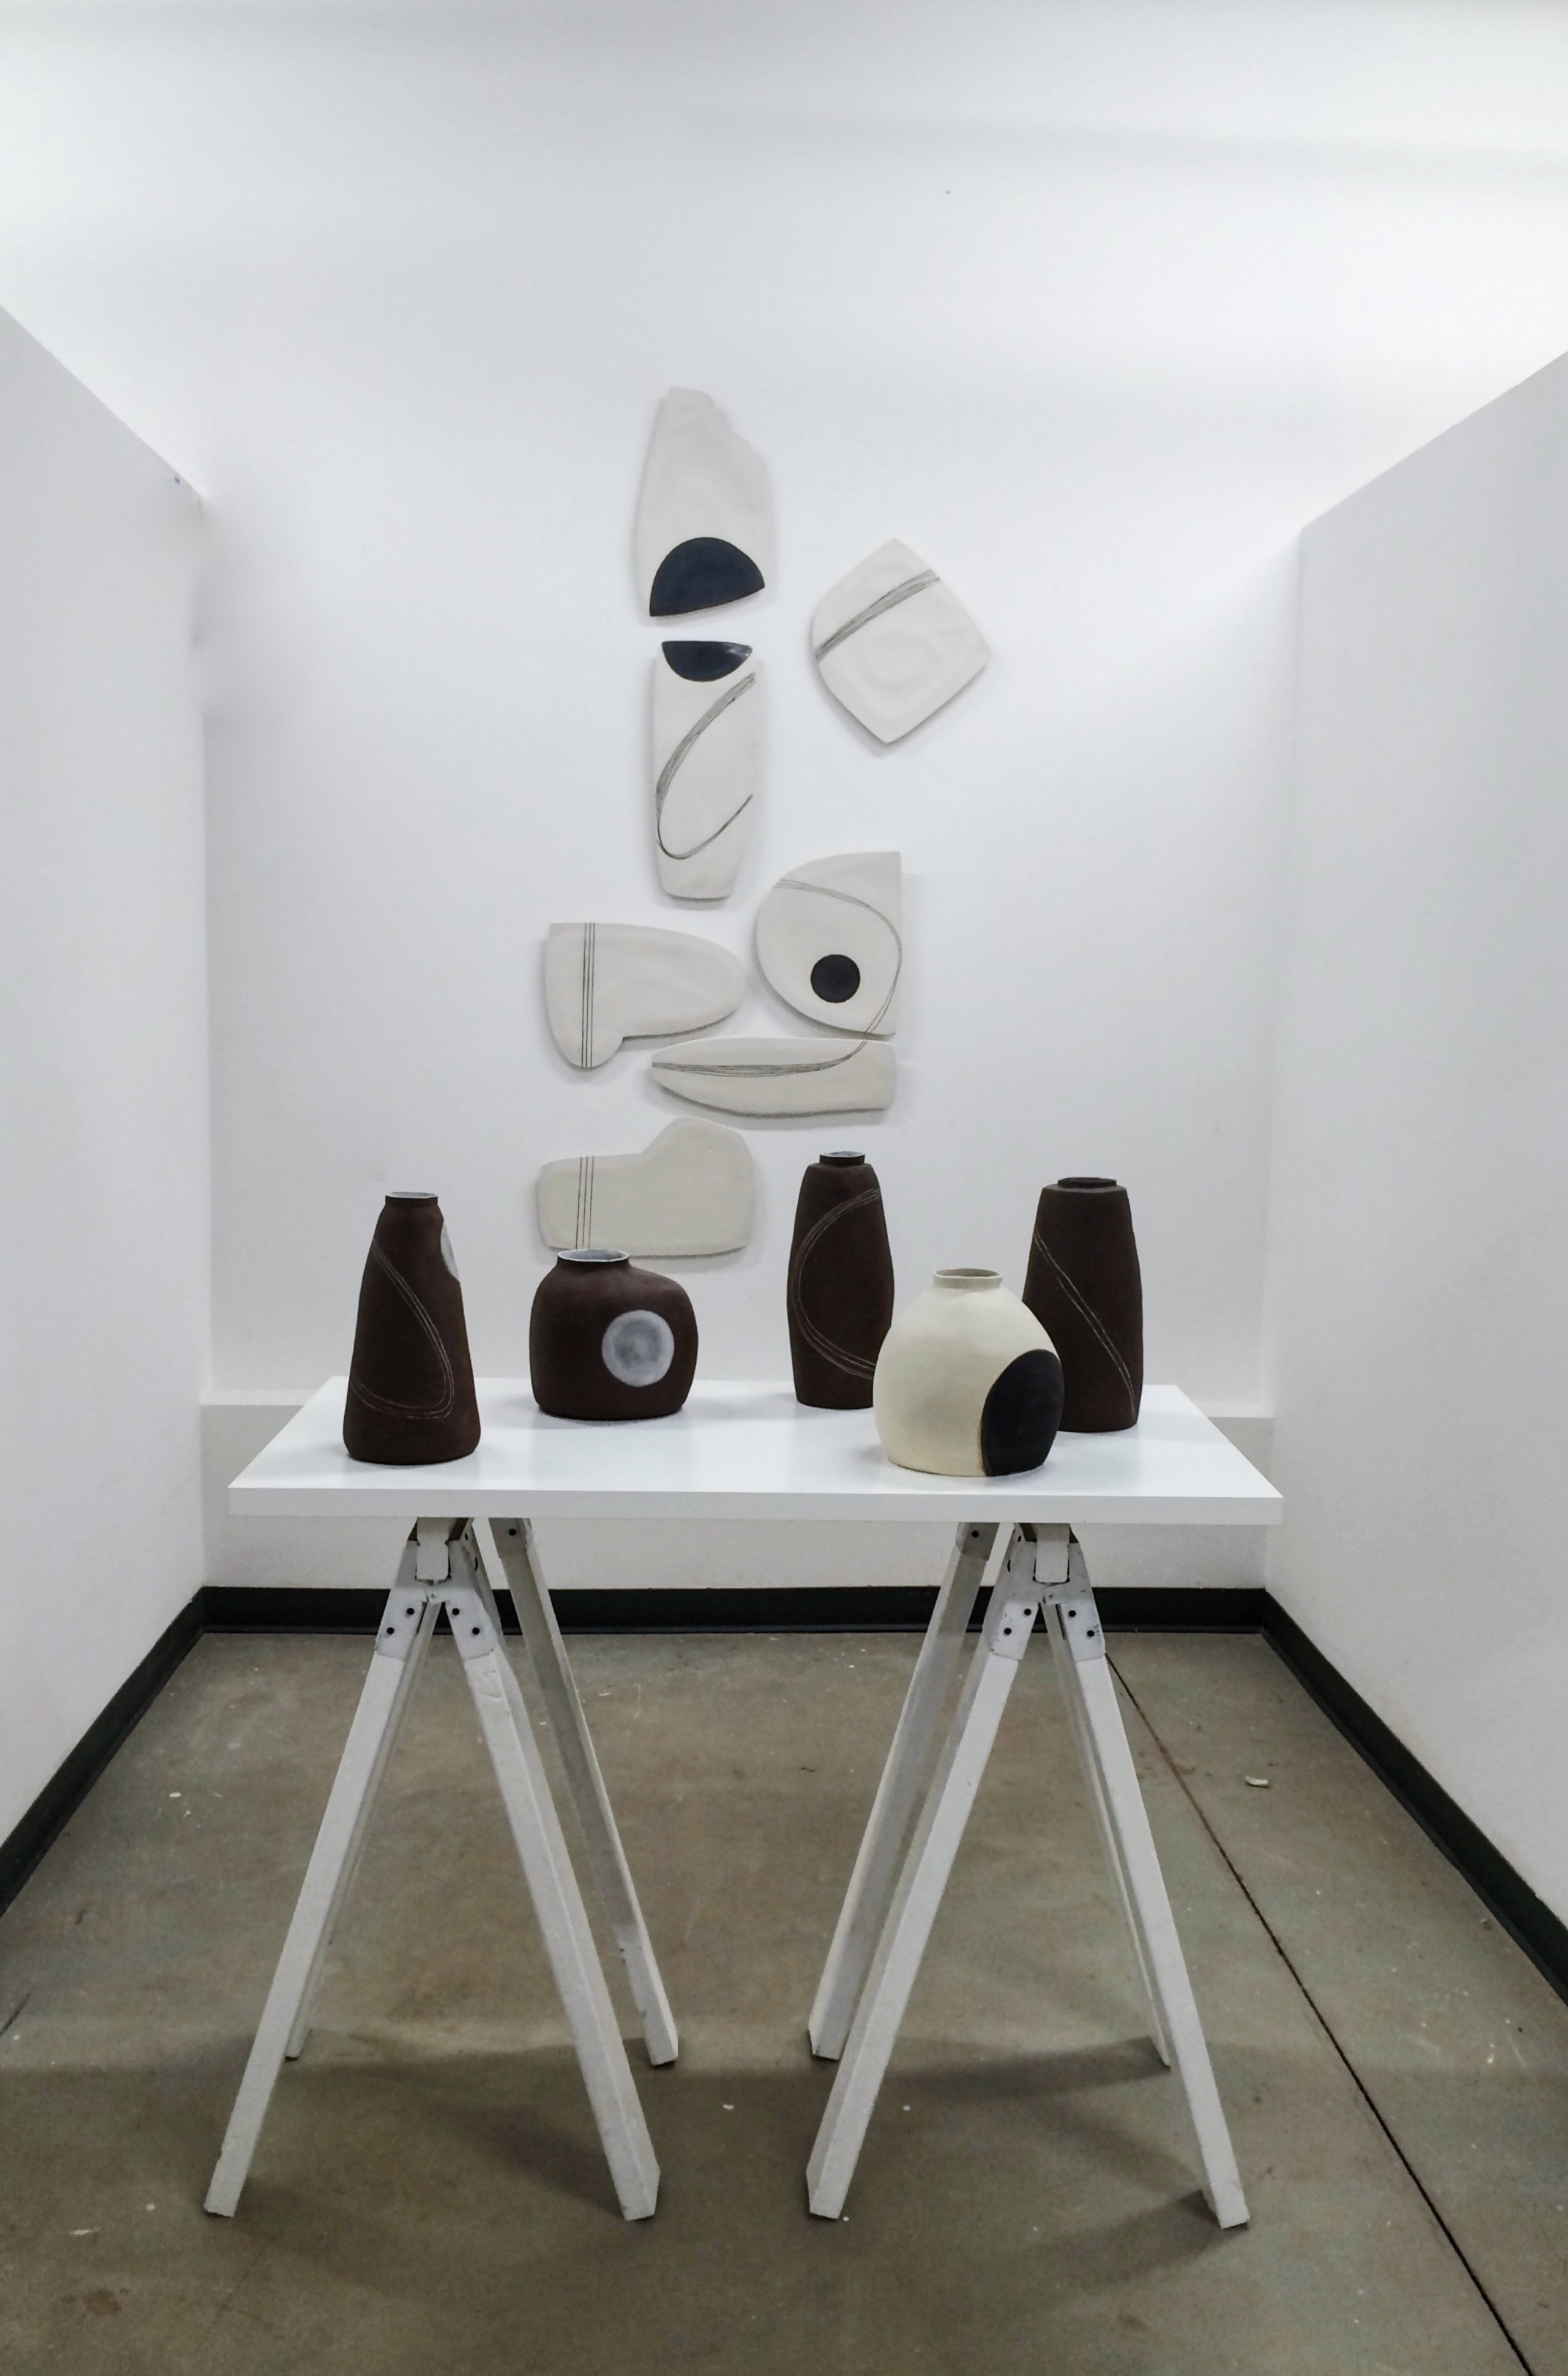 black + white no. 1 installation for ids west 2016, vancouver, british columbia, canada